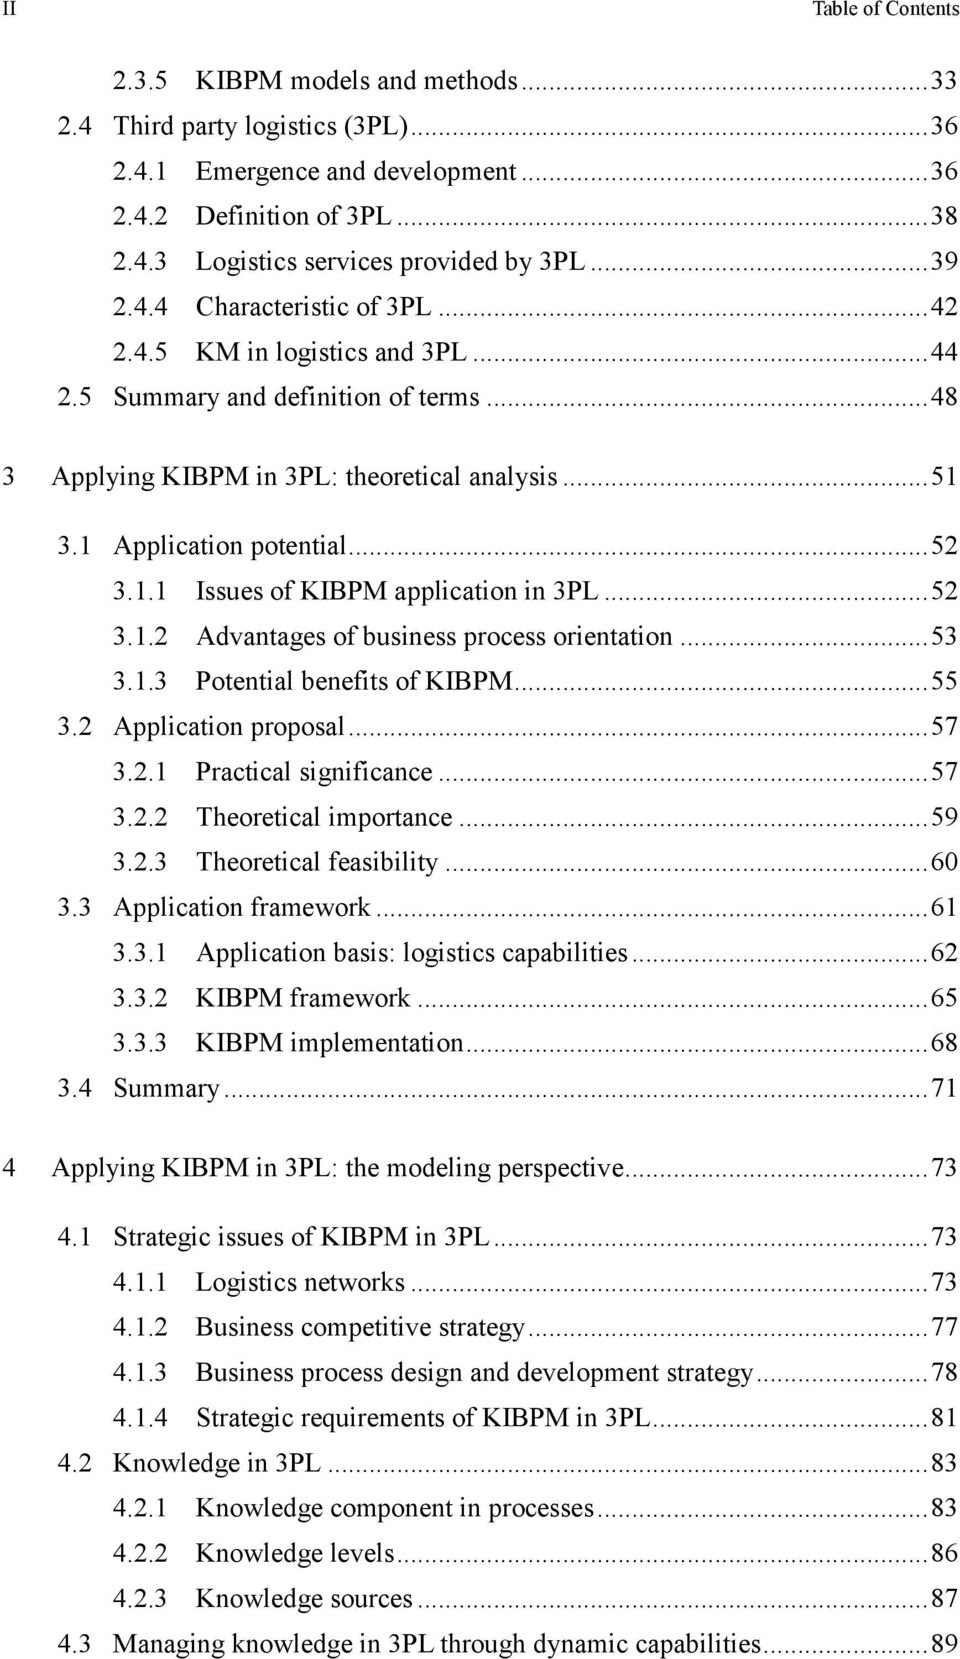 .. 52 3.1.1 Issues of KIBPM application in 3PL... 52 3.1.2 Advantages of business process orientation... 53 3.1.3 Potential benefits of KIBPM... 55 3.2 Application proposal... 57 3.2.1 Practical significance.